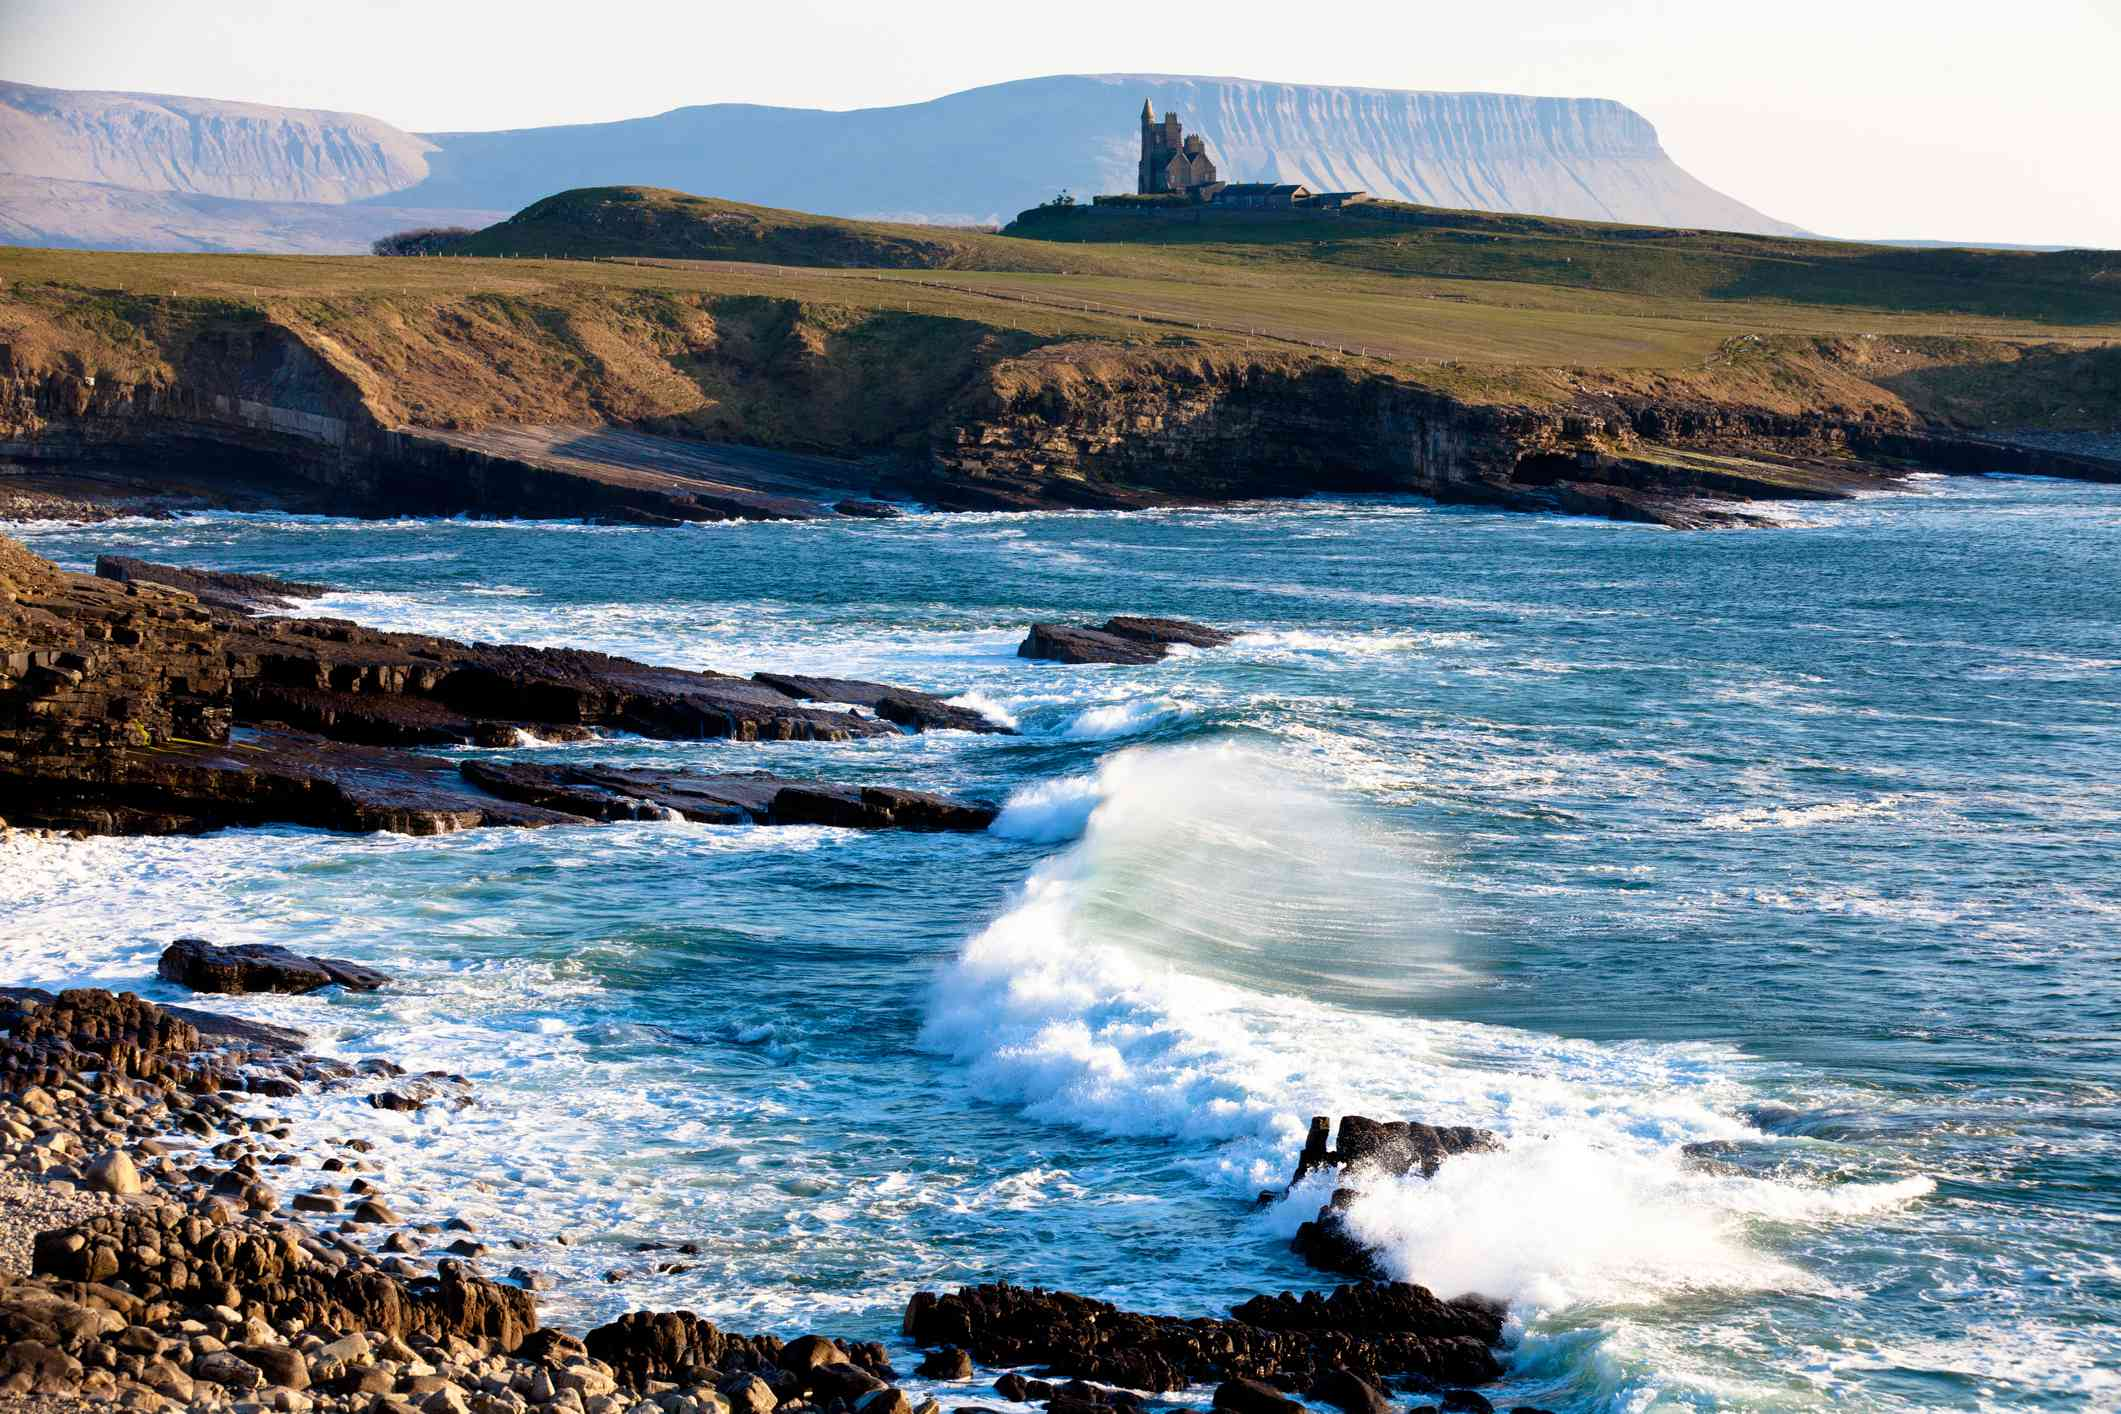 castle on a hill with waves crashing in foreground